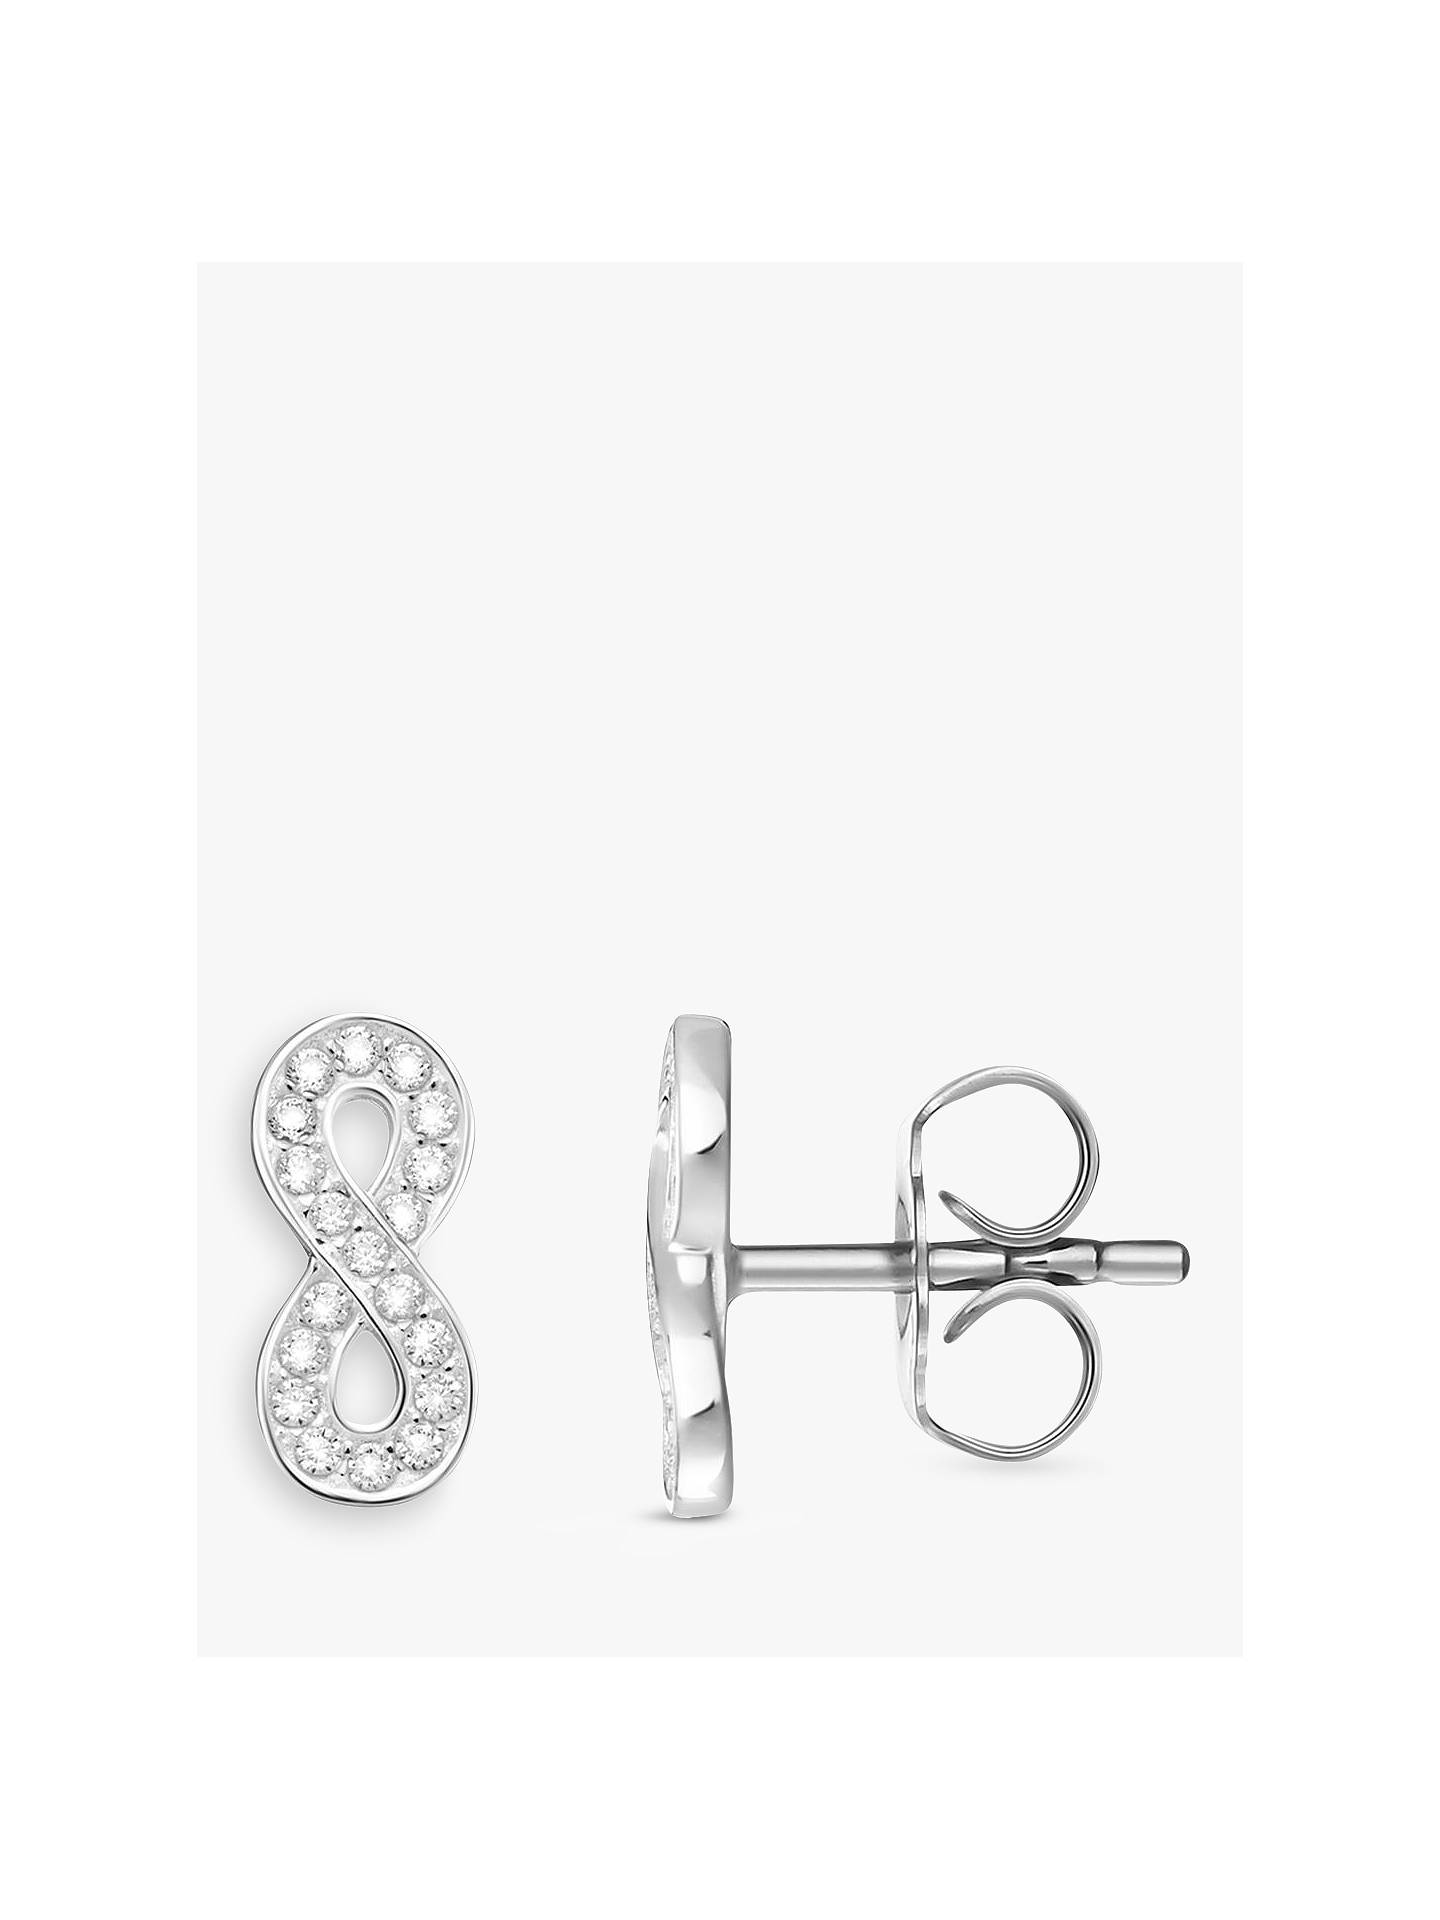 a485333f2 Buy THOMAS SABO Glam & Soul Infinity Stud Earrings, Silver Online at  johnlewis. ...